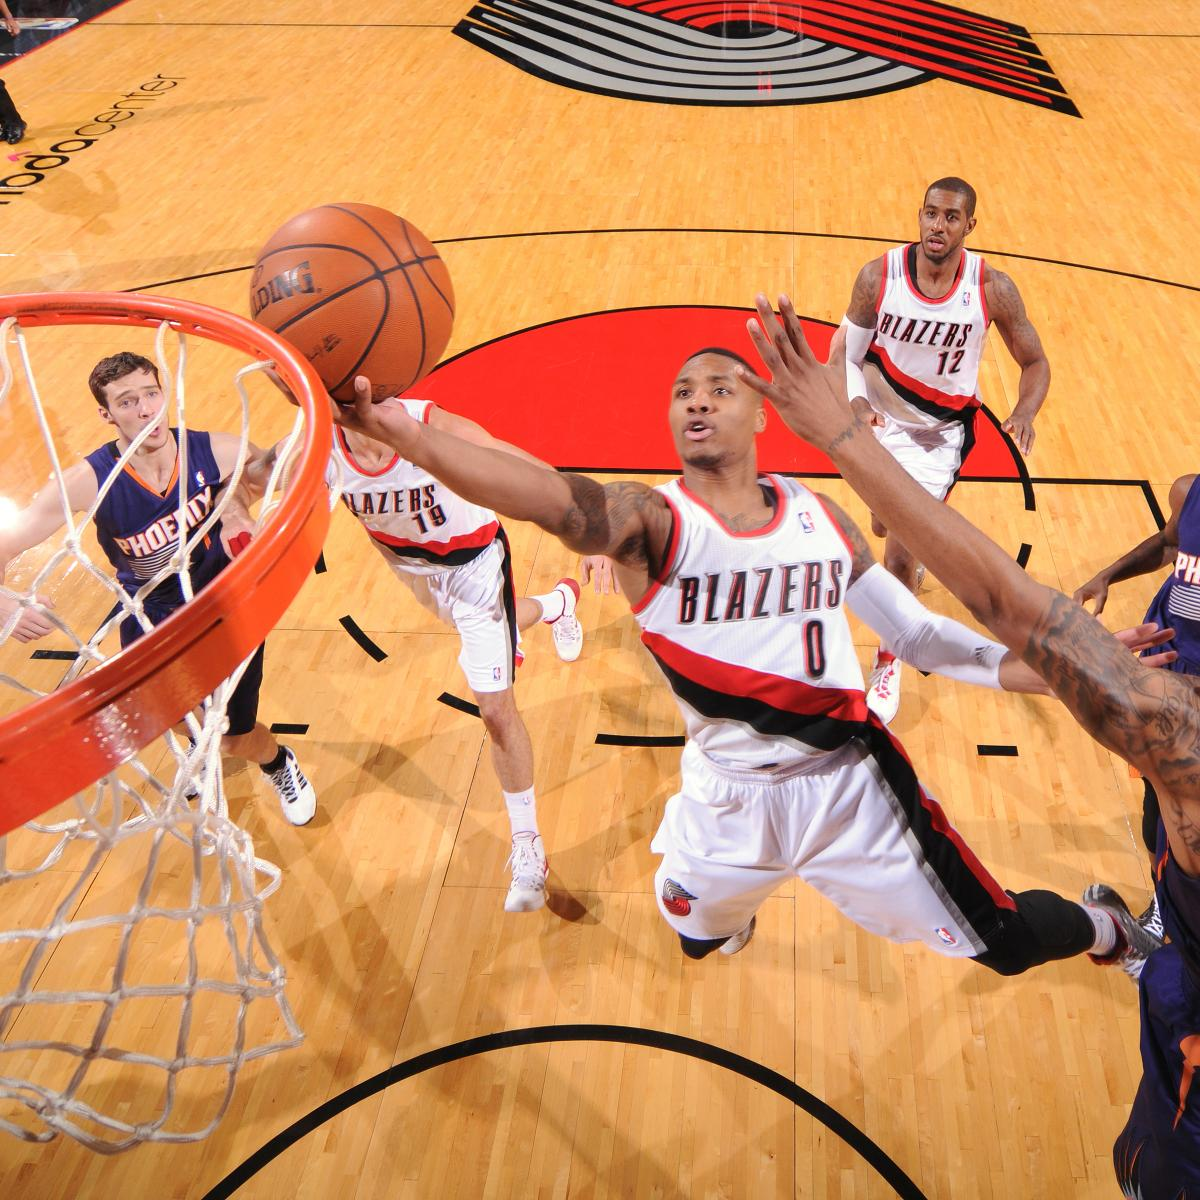 Portland Blazers Last Game: Has Portland Trail Blazers' Damian Lillard Progressed From